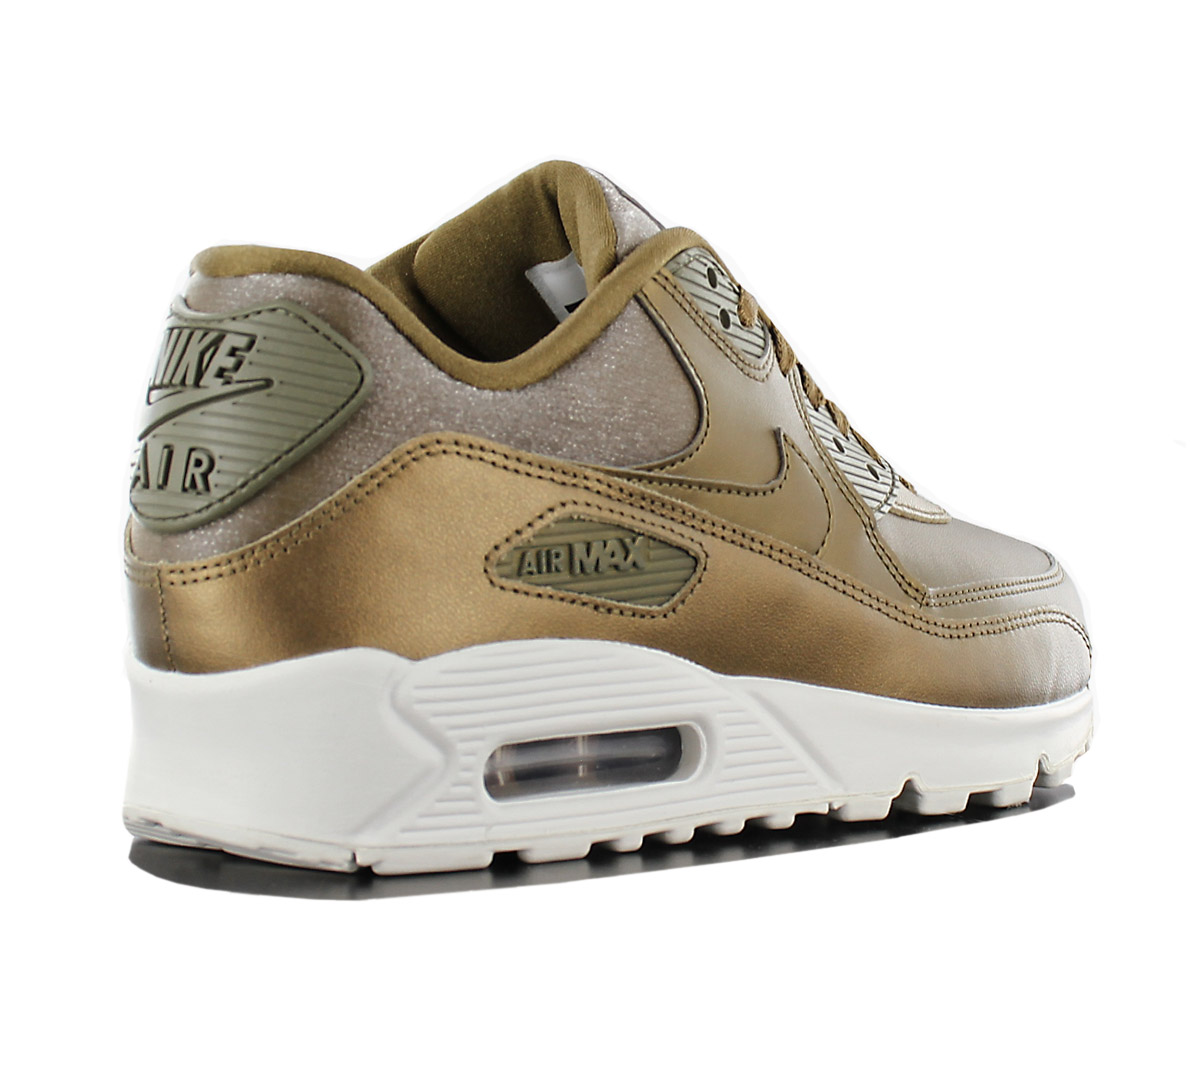 NEU Nike Air 90 Premium Damen Schuhe Gold Edition 901